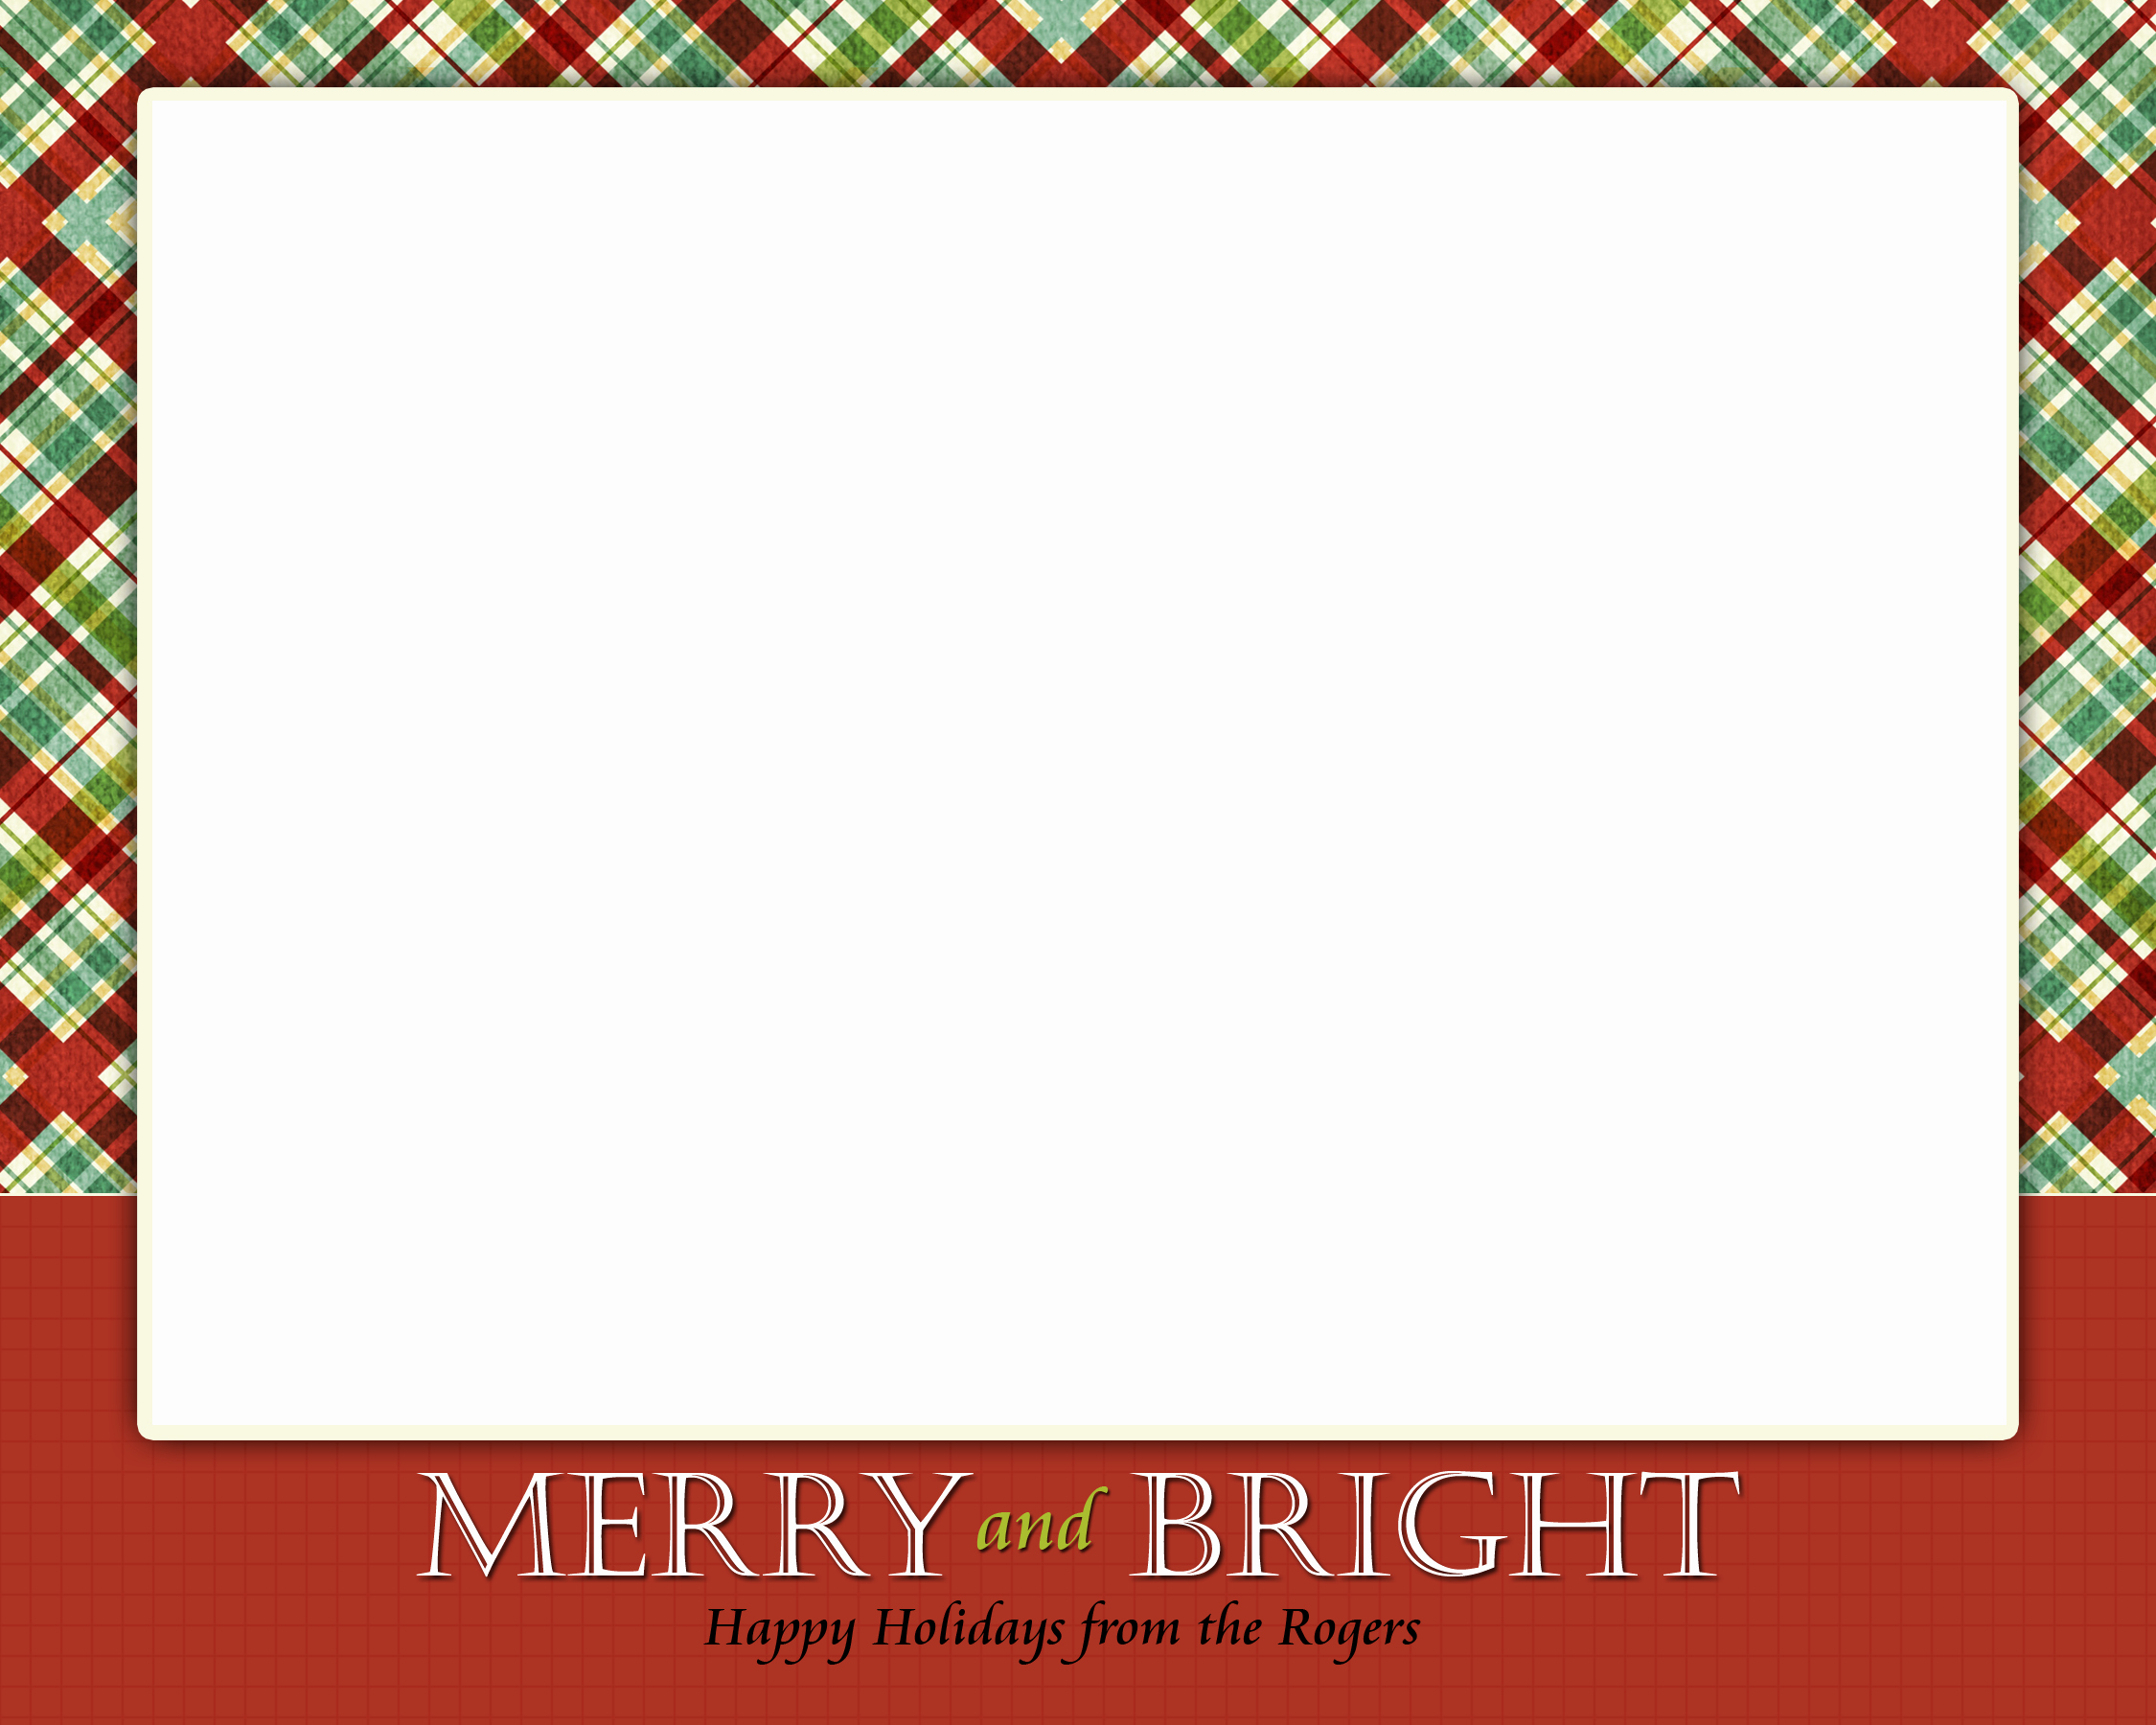 5 X 7 Postcard Template Awesome How Twitter Saved My Christmas Cards How to Merge